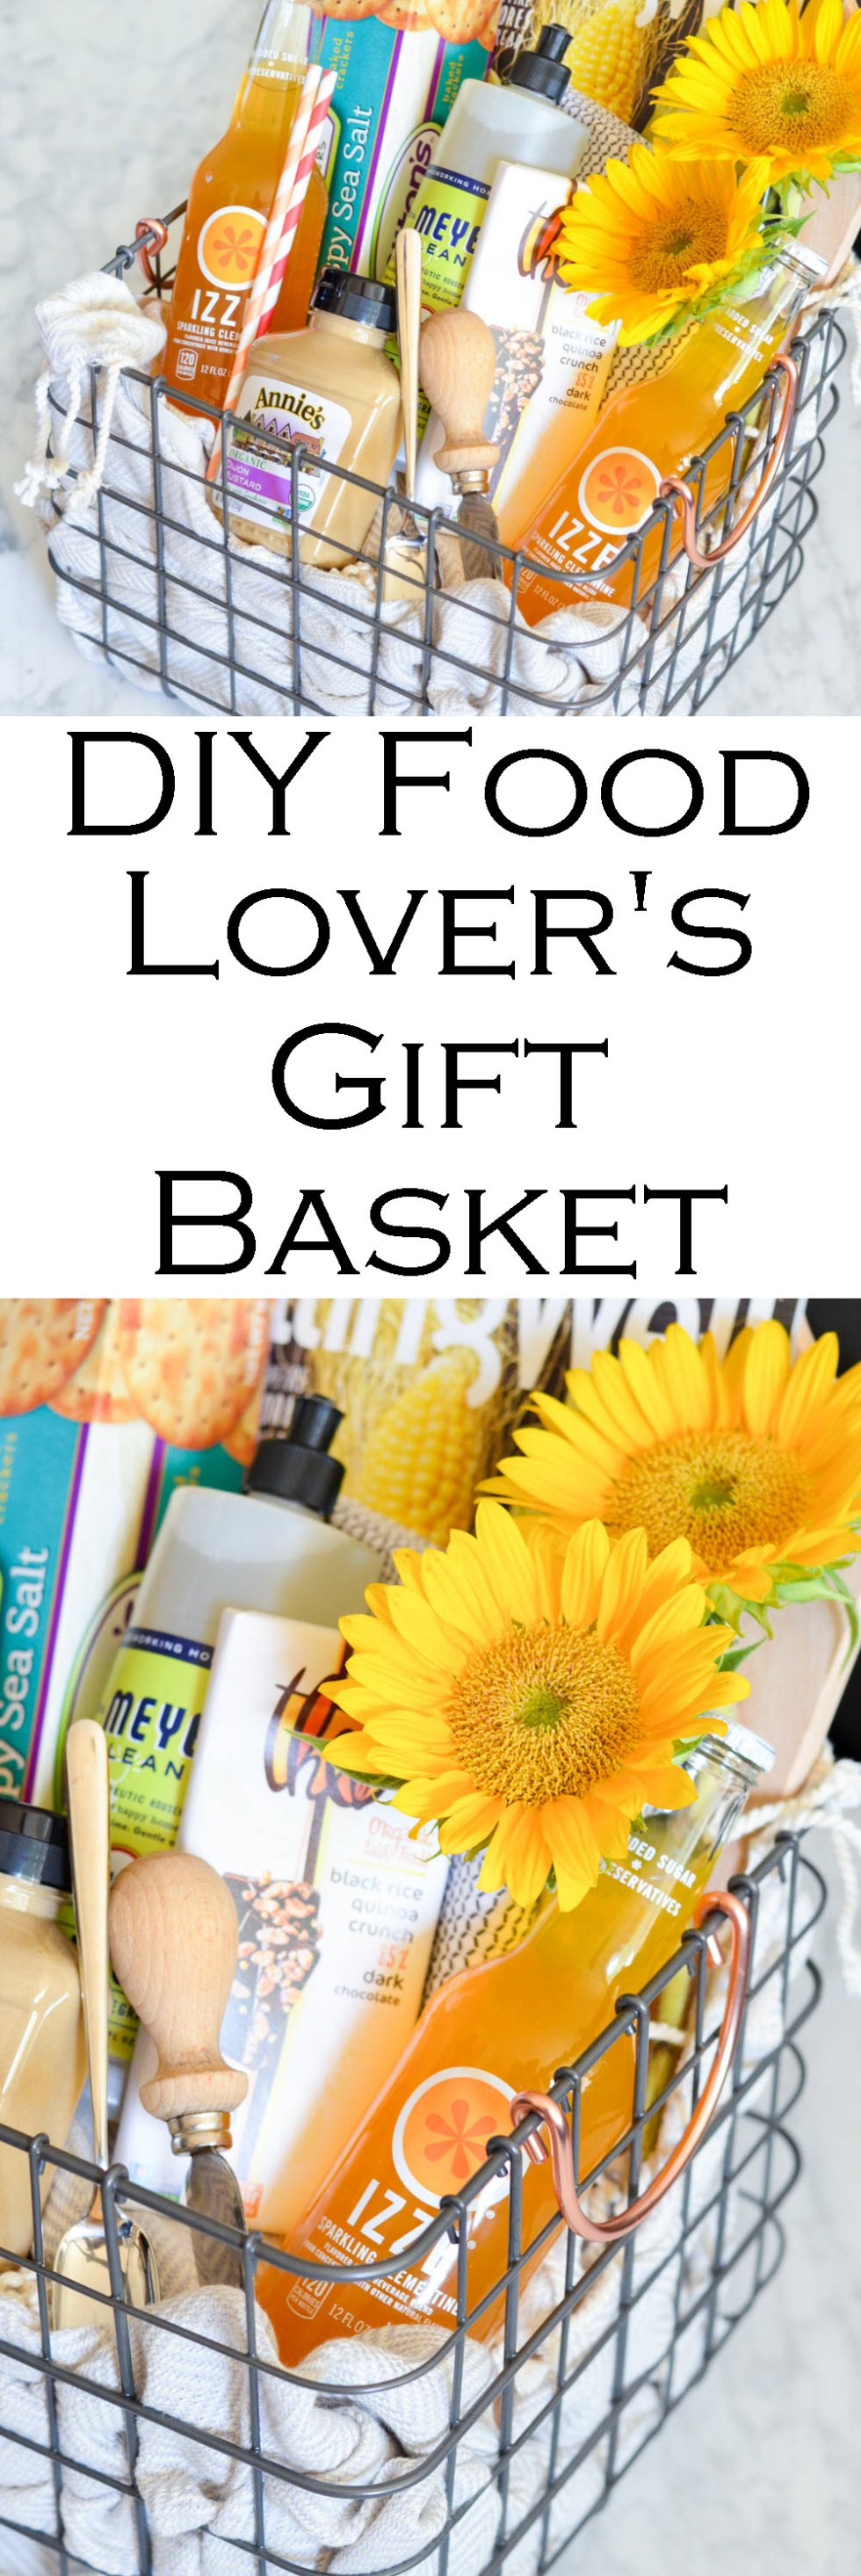 DIY Food Lover's Gift Basket w. IZZE drinks, magazines, crackers, spread, flowers, chocolate, etc.! Perfect Homemade Best Friend Gift Idea!